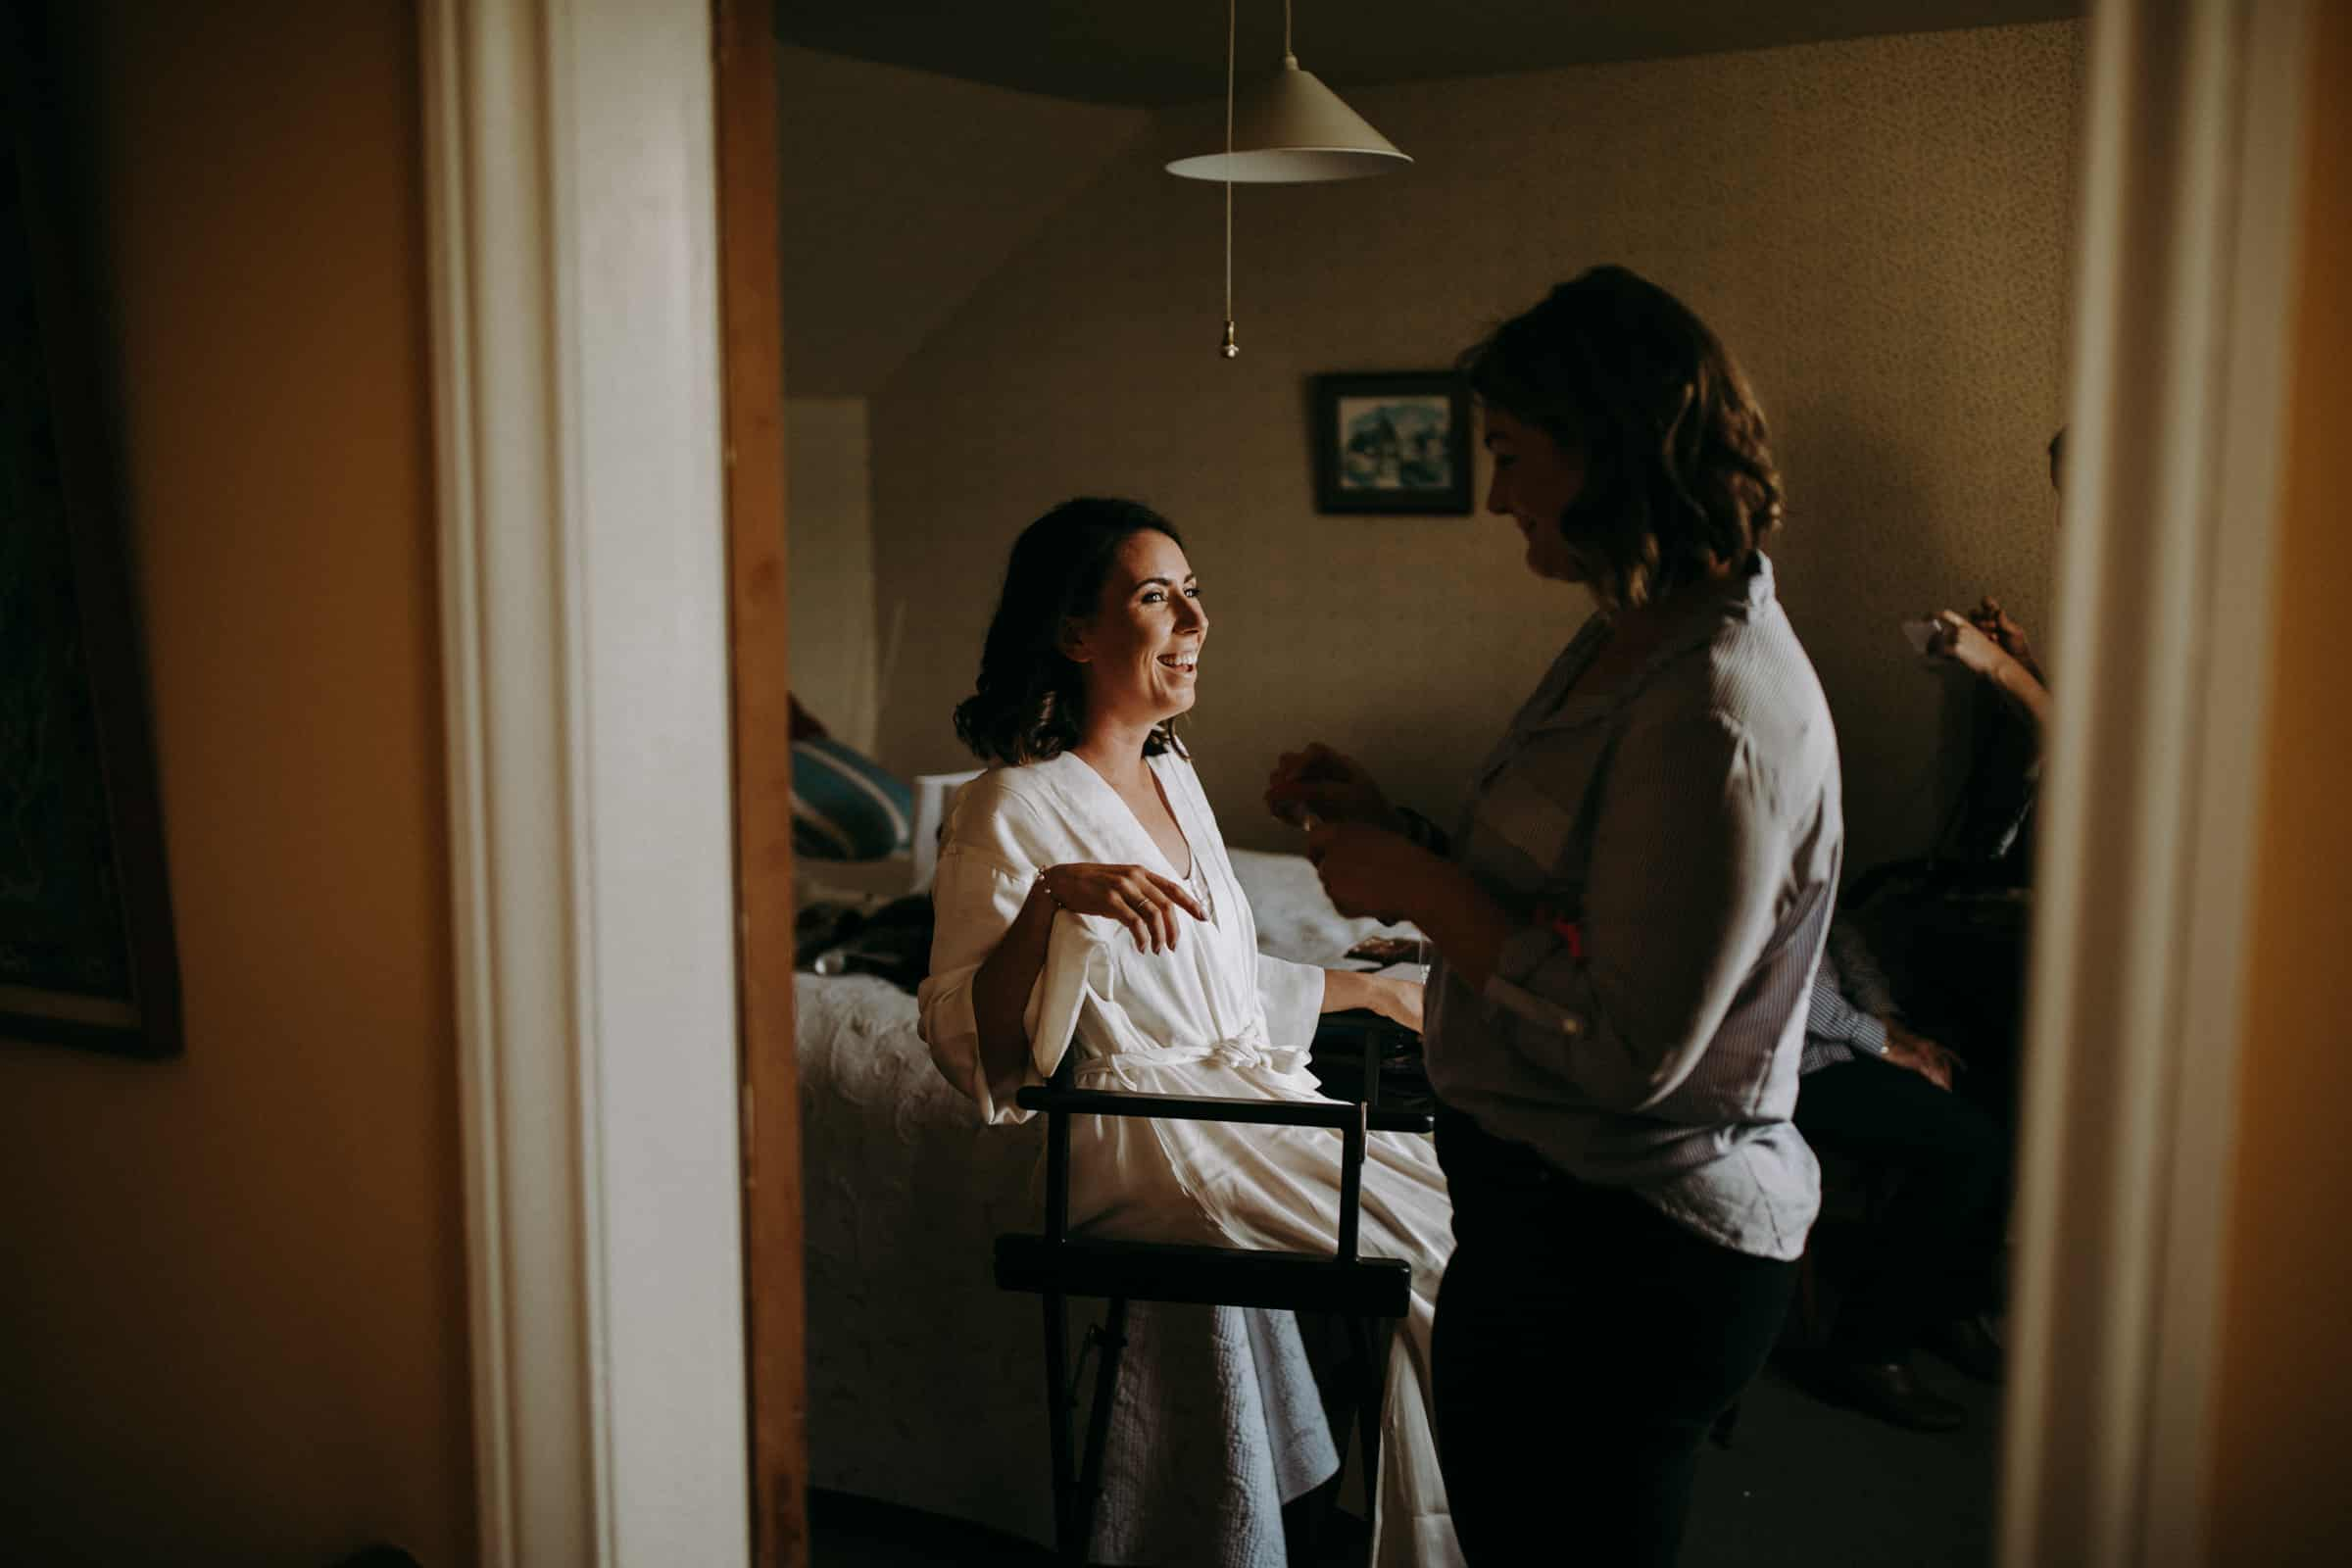 A bride is getting ready in a vintage room.